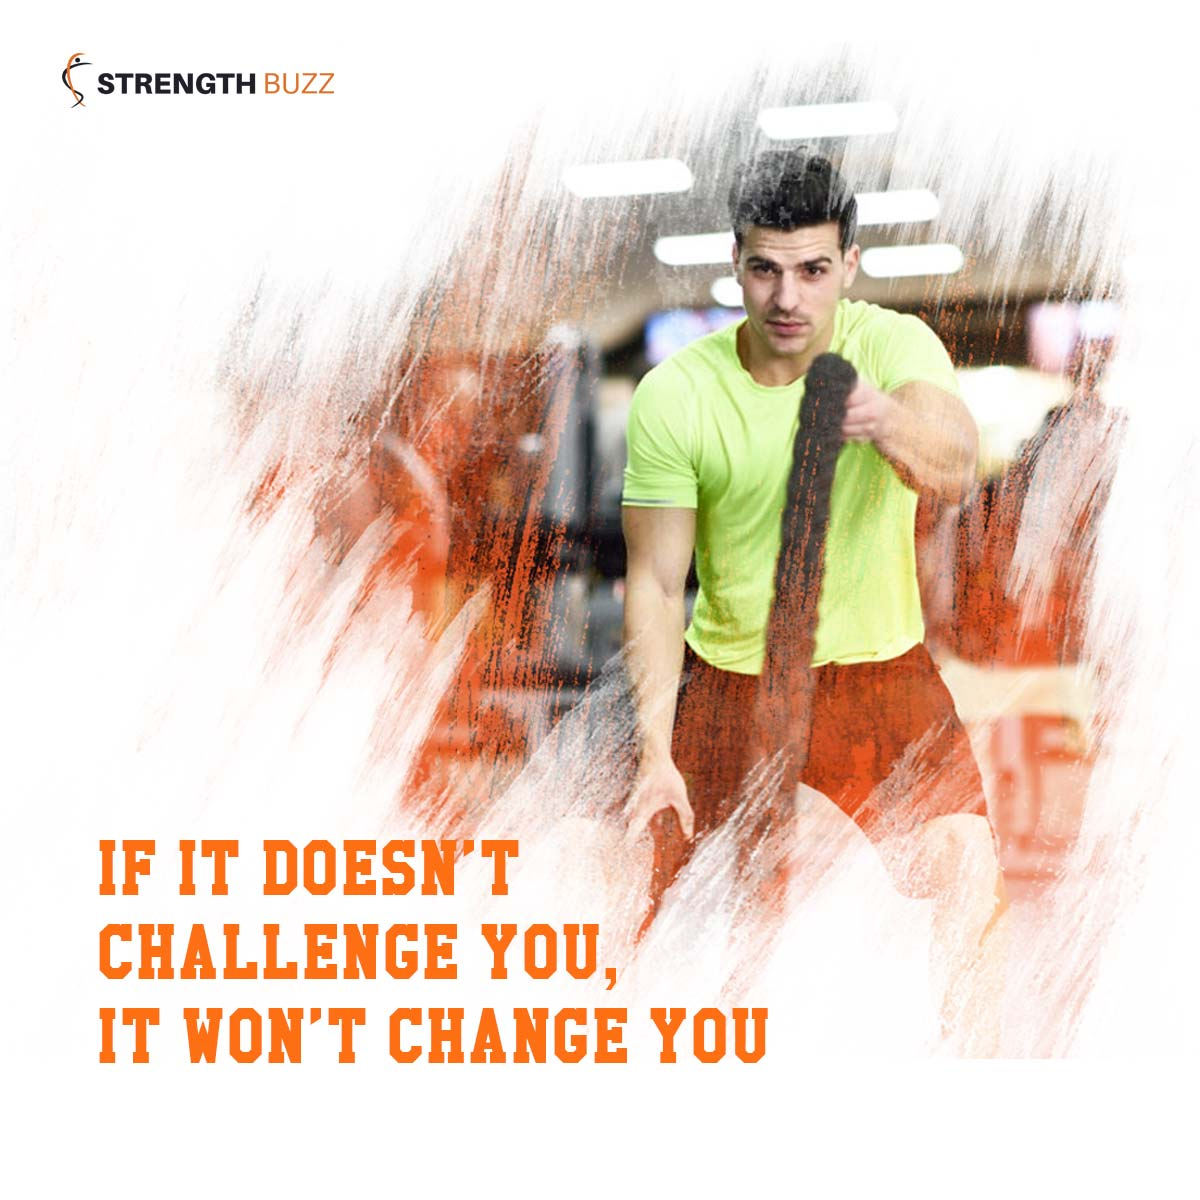 Gym Motivation Quotes - If it doesn't challenge you, it won't change you